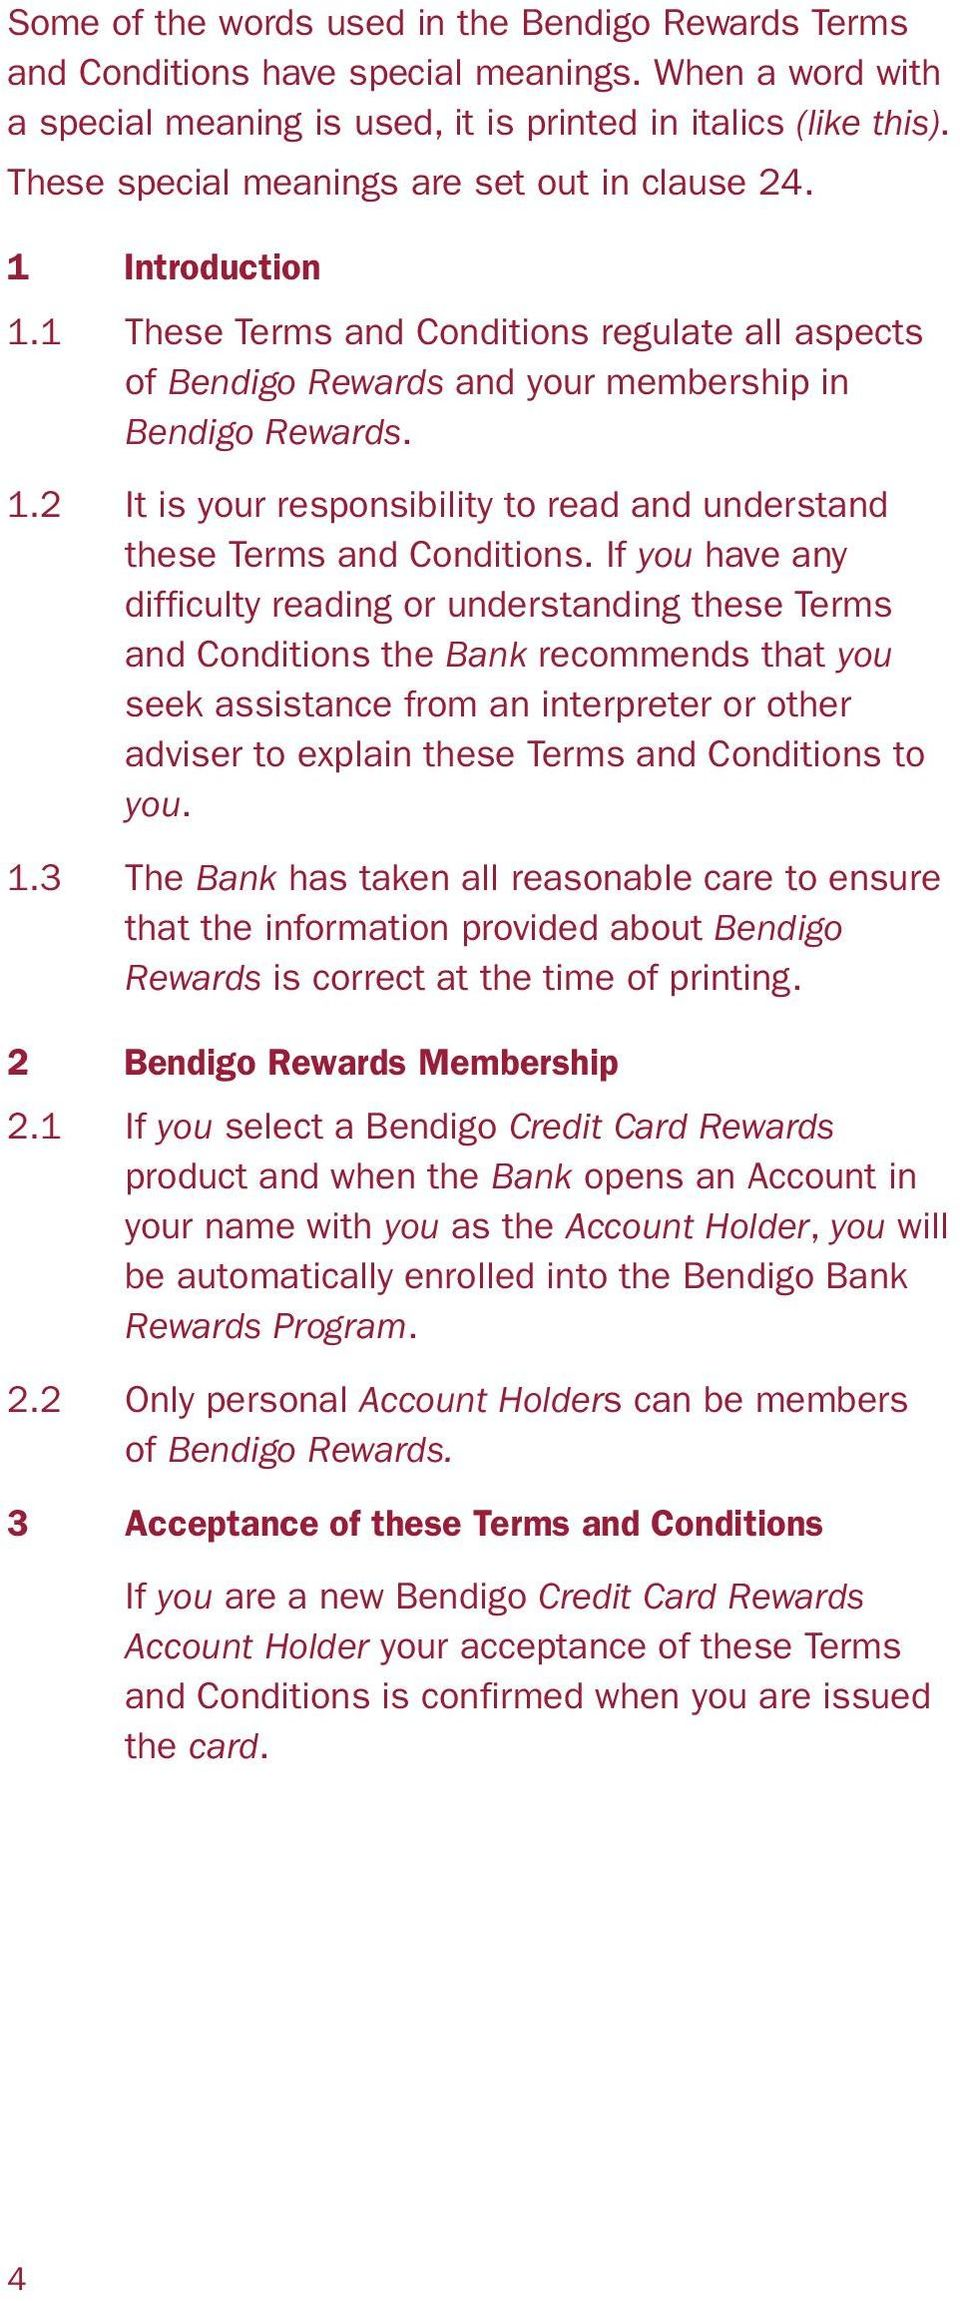 If you have any difficulty reading or understanding these Terms and Conditions the Bank recommends that you seek assistance from an interpreter or other adviser to explain these Terms and Conditions